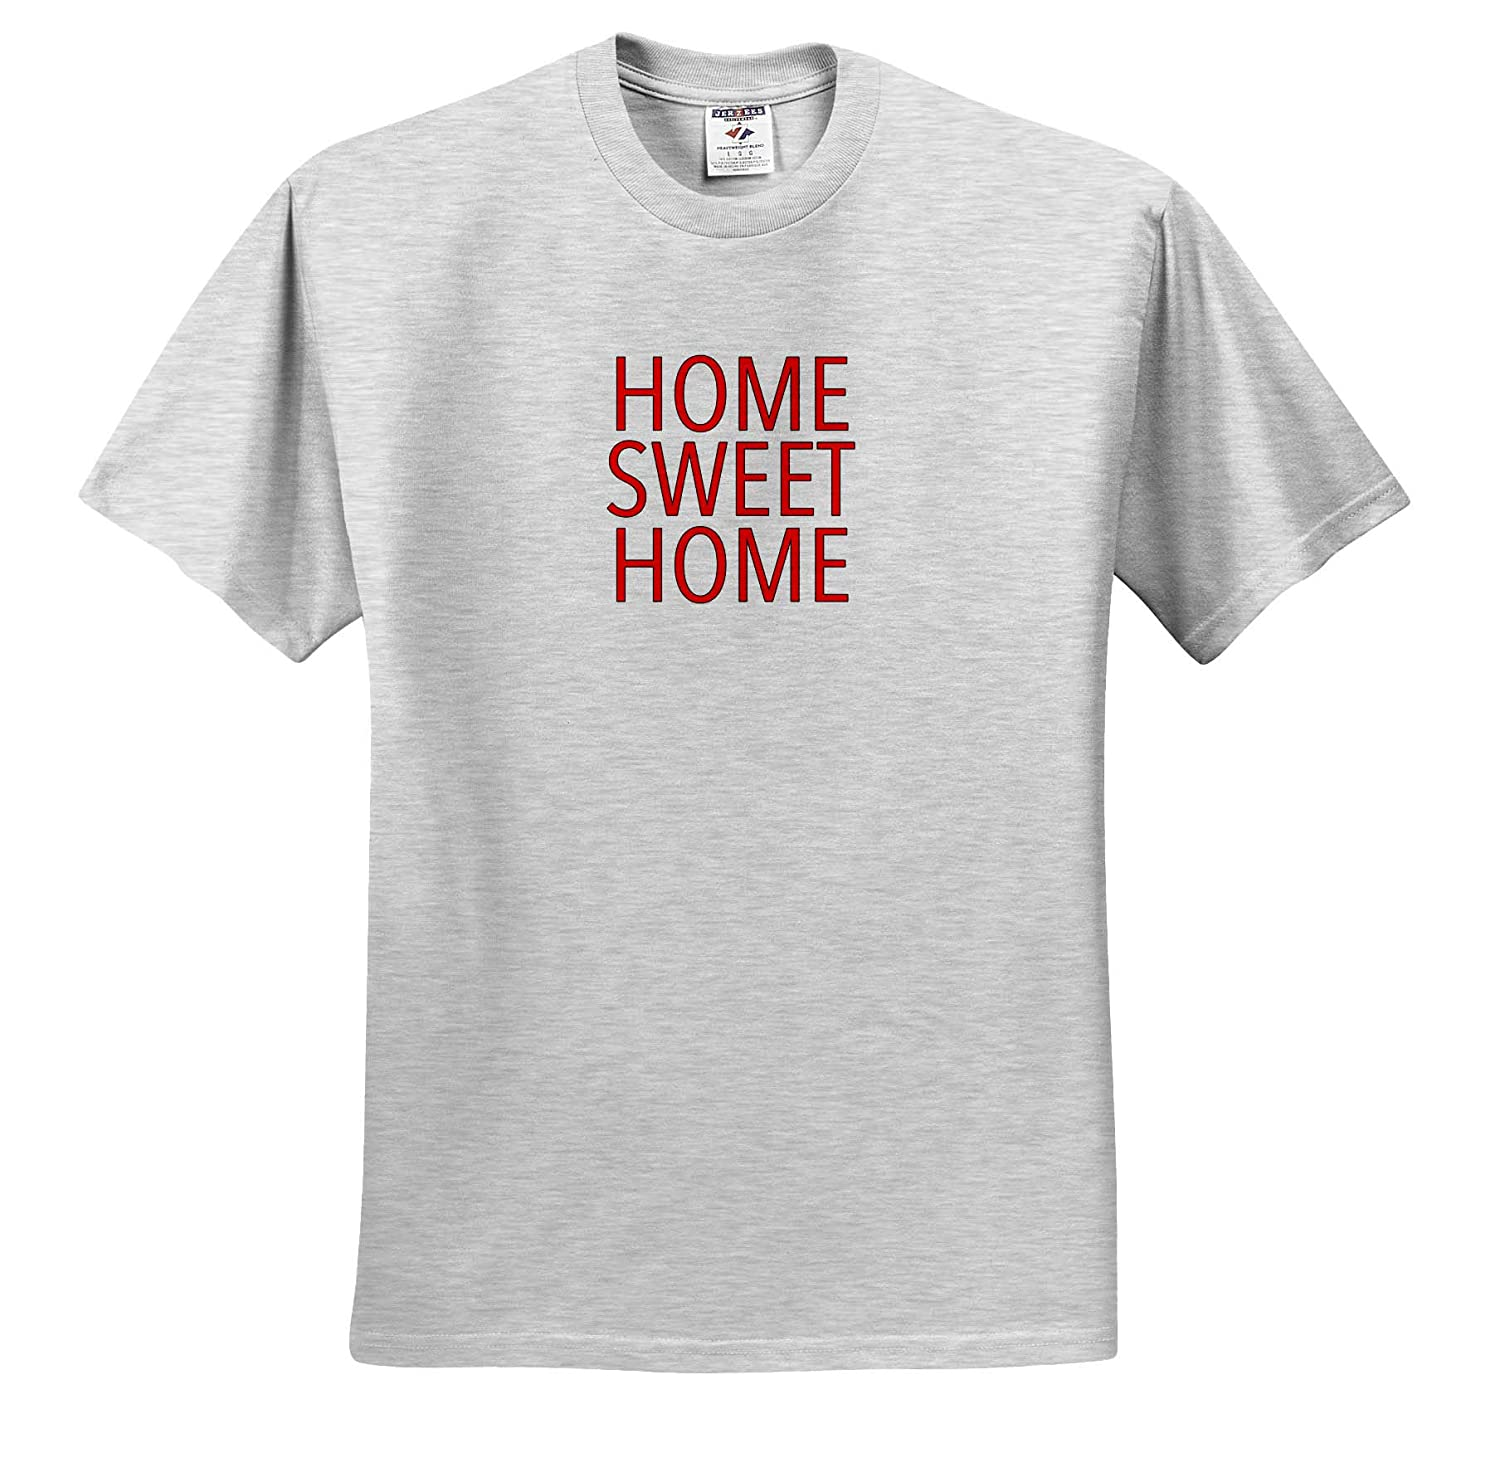 3dRose EvaDane Adult T-Shirt XL Inspirational Sayings ts/_308890 Home Sweet Home Red